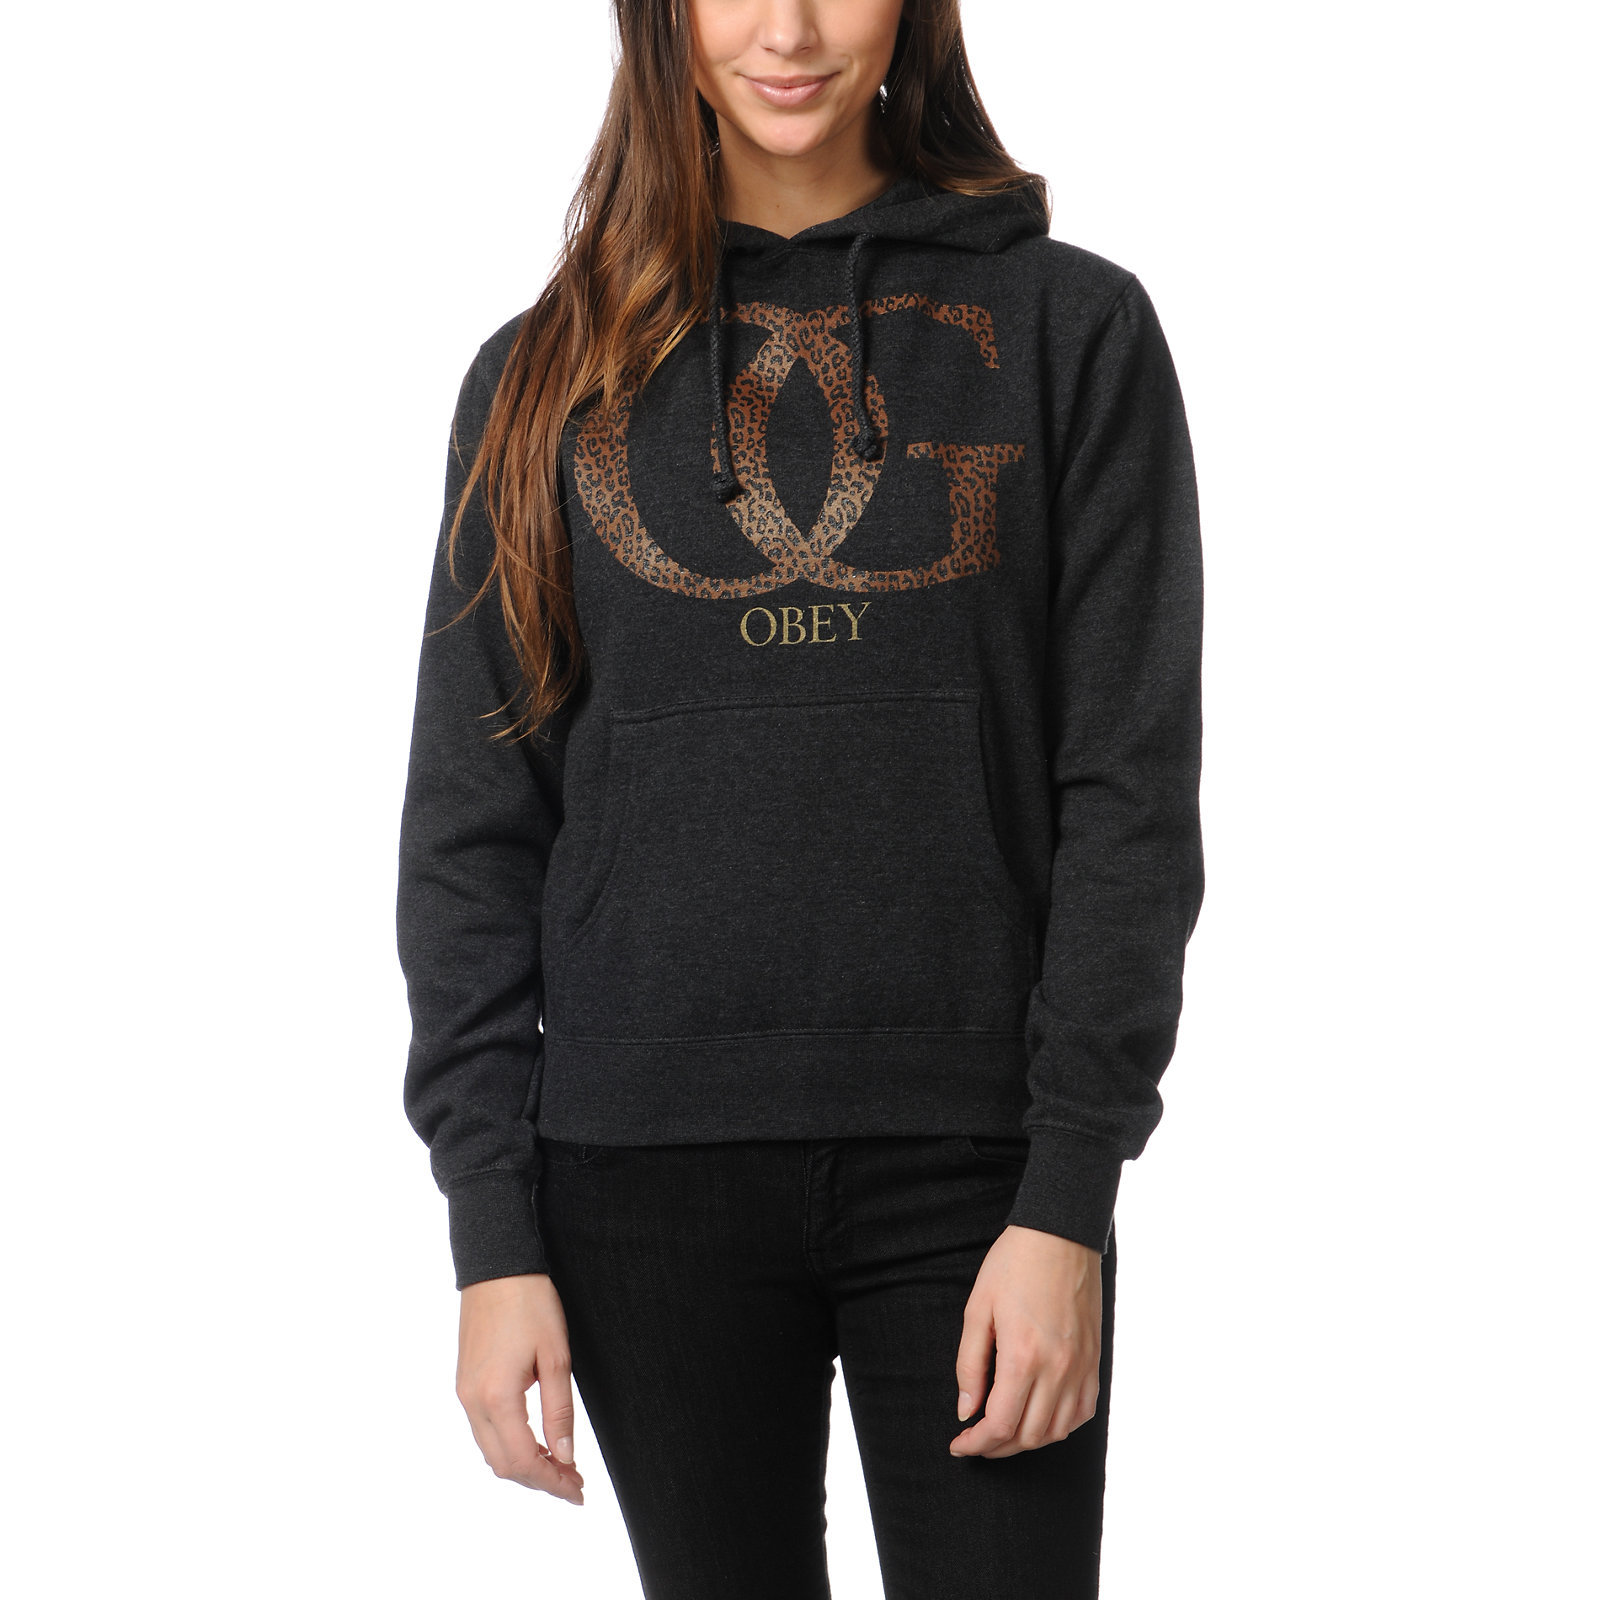 Obey Hoodies For Girls | www.imgkid.com - The Image Kid ...